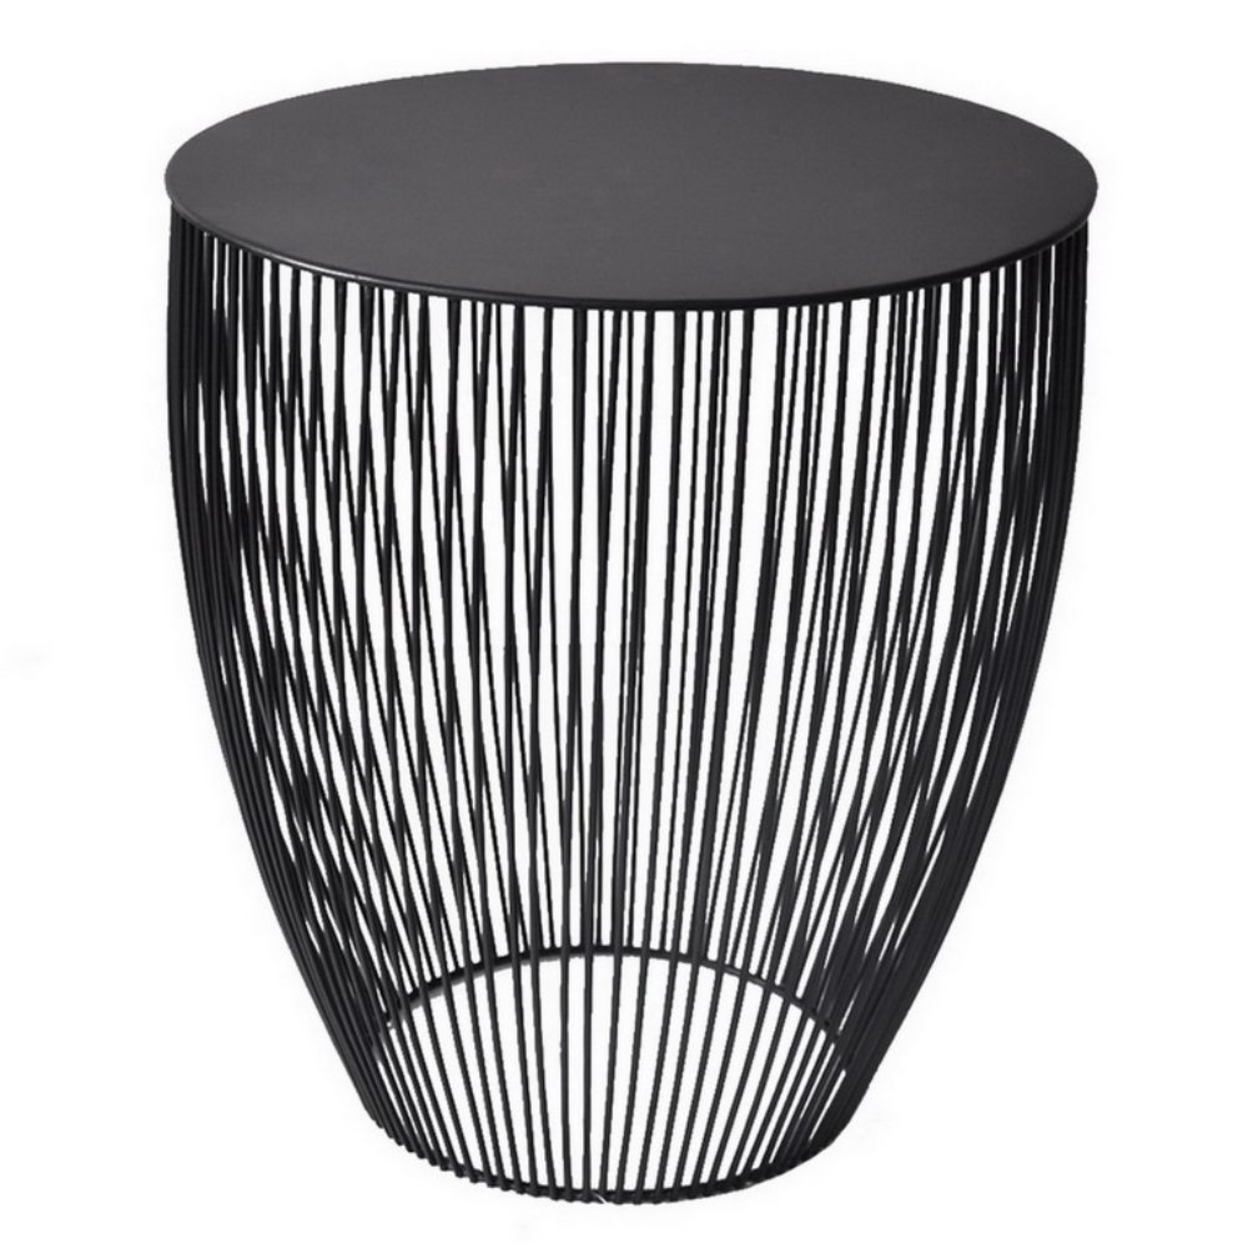 Benzara 93596 magnificent Metal Accent Table